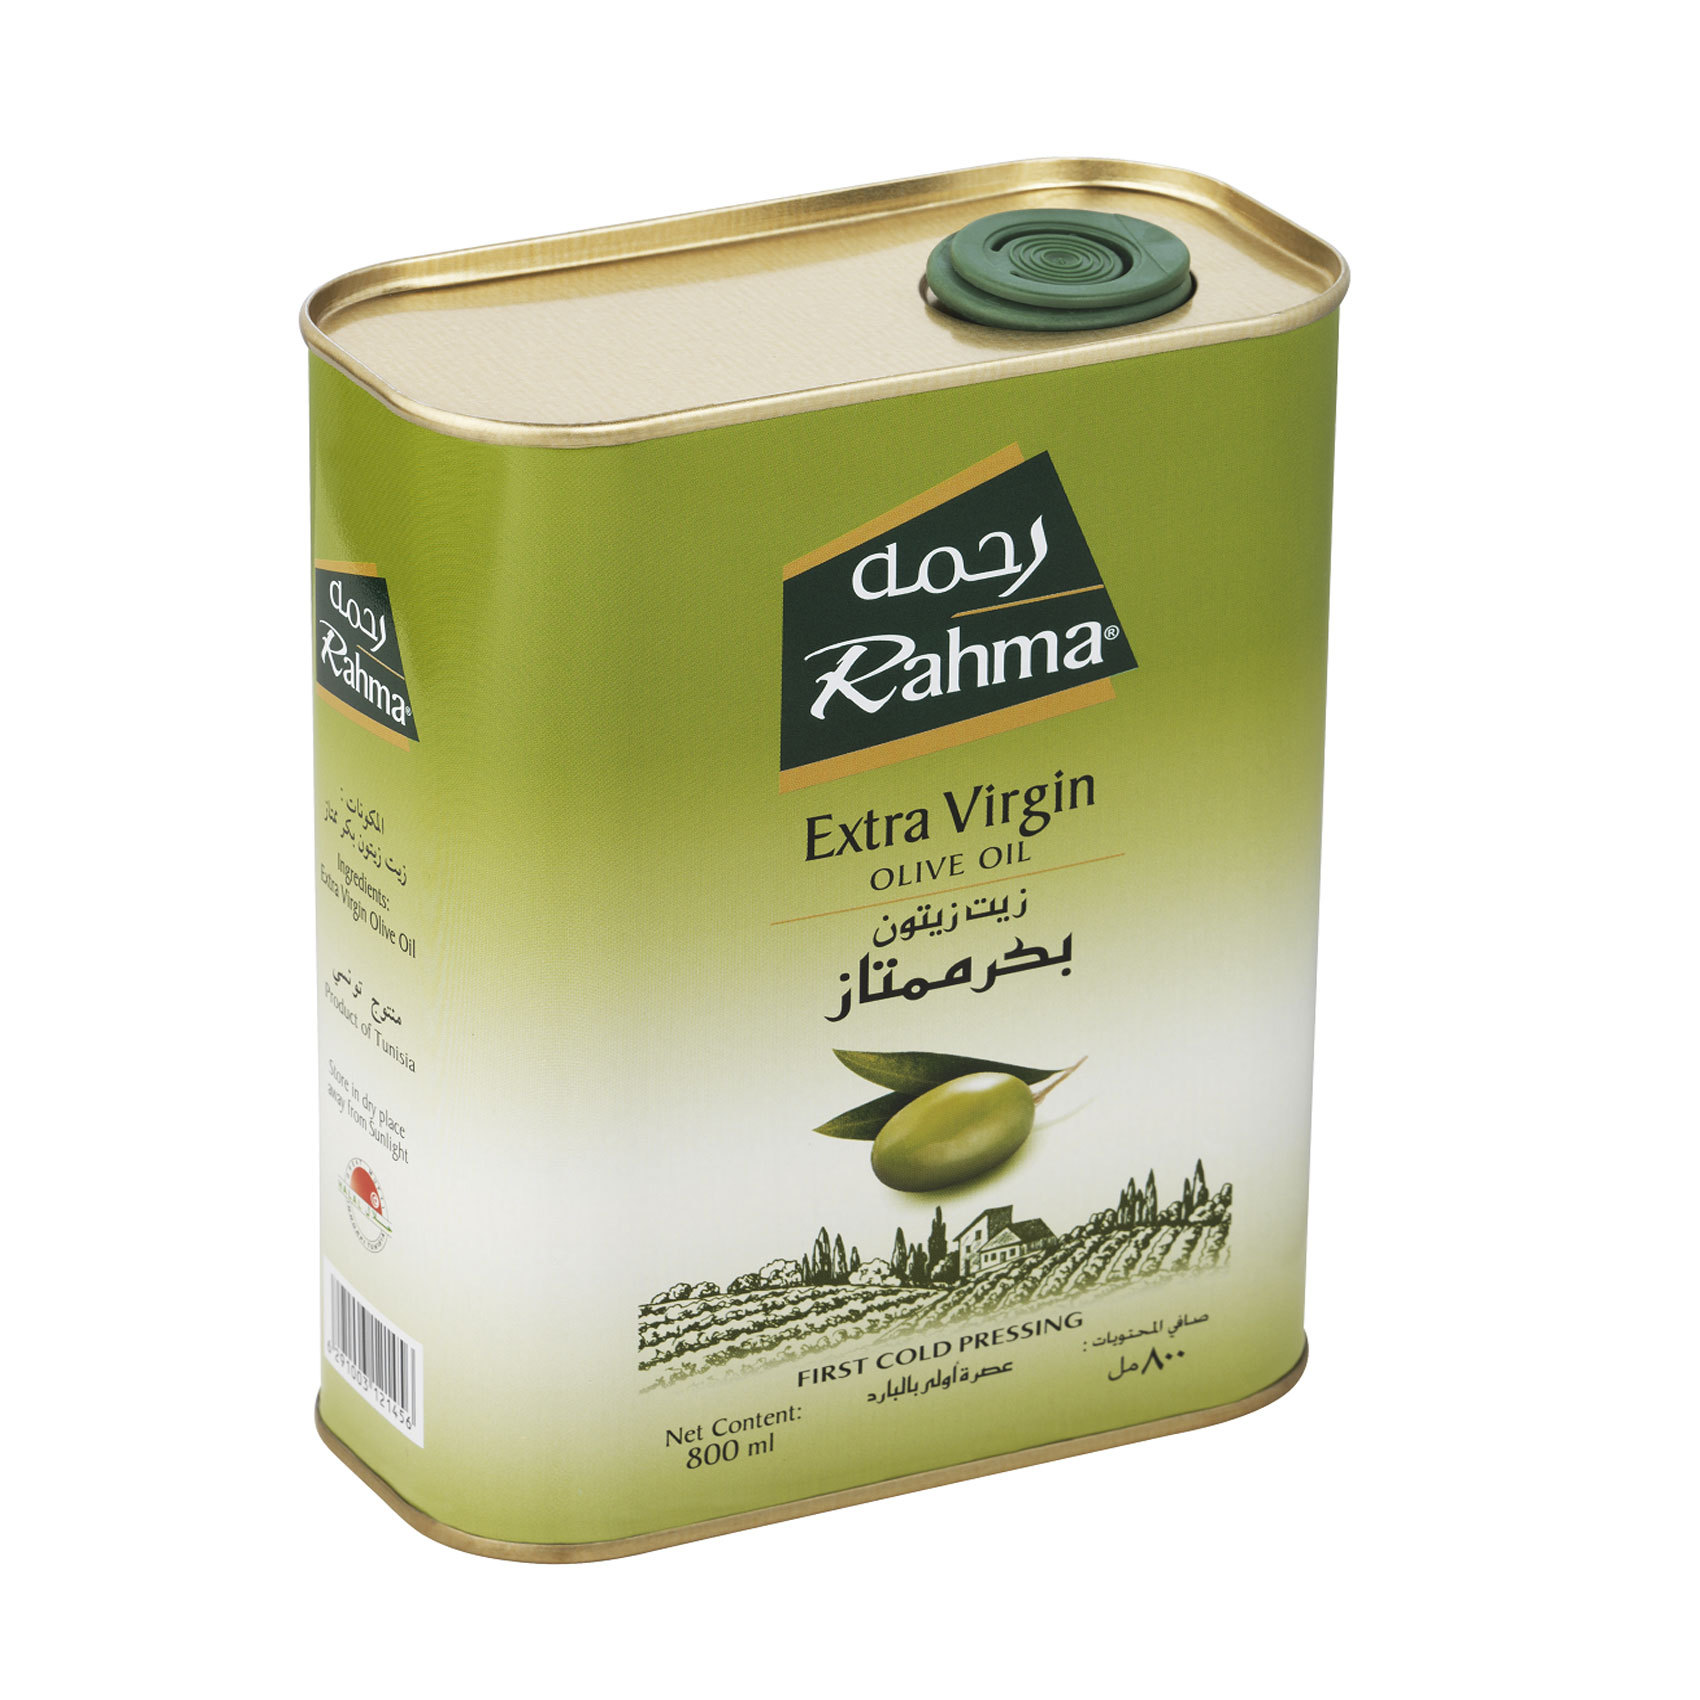 RAHMA EV OLIVE OIL 800ML TIN